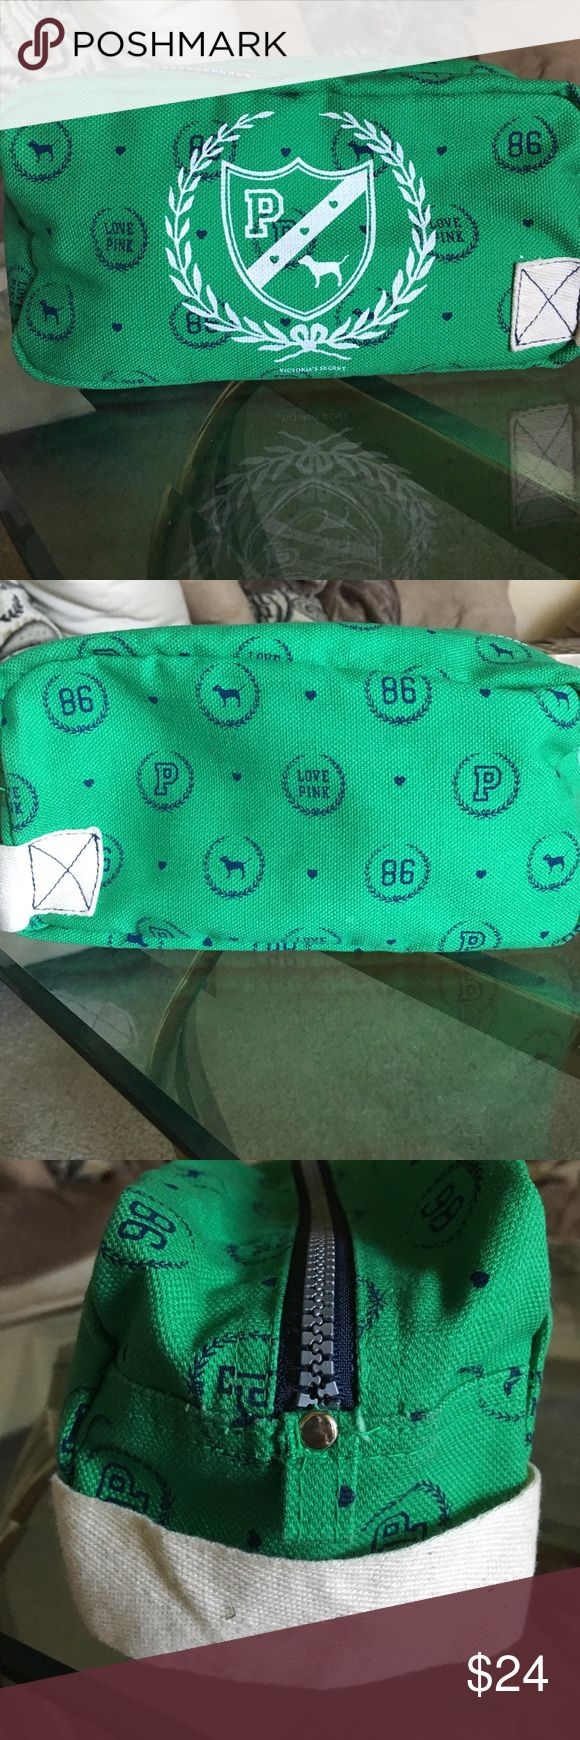 """NWOT VS PINK Campus Vintage Cosmetic Bag BRAND NEW. NEVER USED. Victoria Secret's PINK Vintage """"Campus"""" line green cosmetic case. Green canvas material, plenty of room and easy to fold. PINK Victoria's Secret Bags Cosmetic Bags & Cases"""